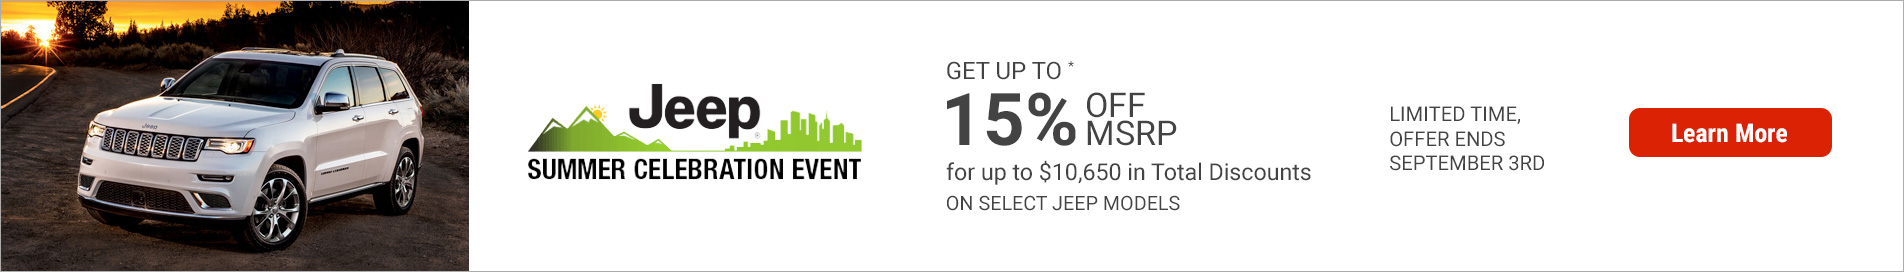 June 2019 Jeep OEM Offer